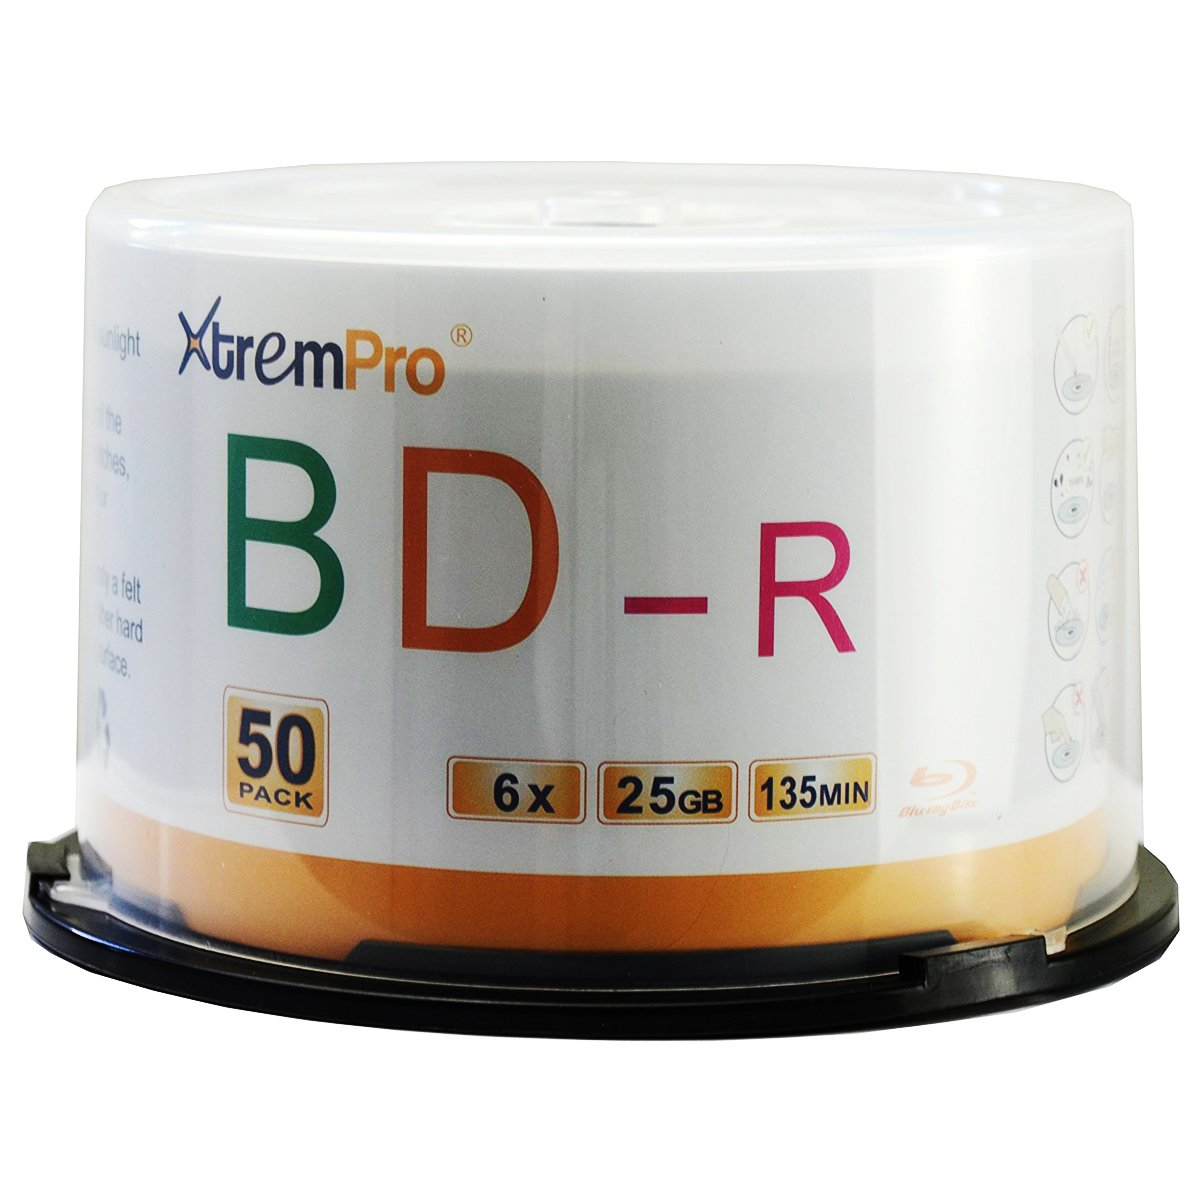 XtremPro BD-R 6X 25GB 135Min Blu-Ray 50 Pack Blank Discs in Spindle - 11053